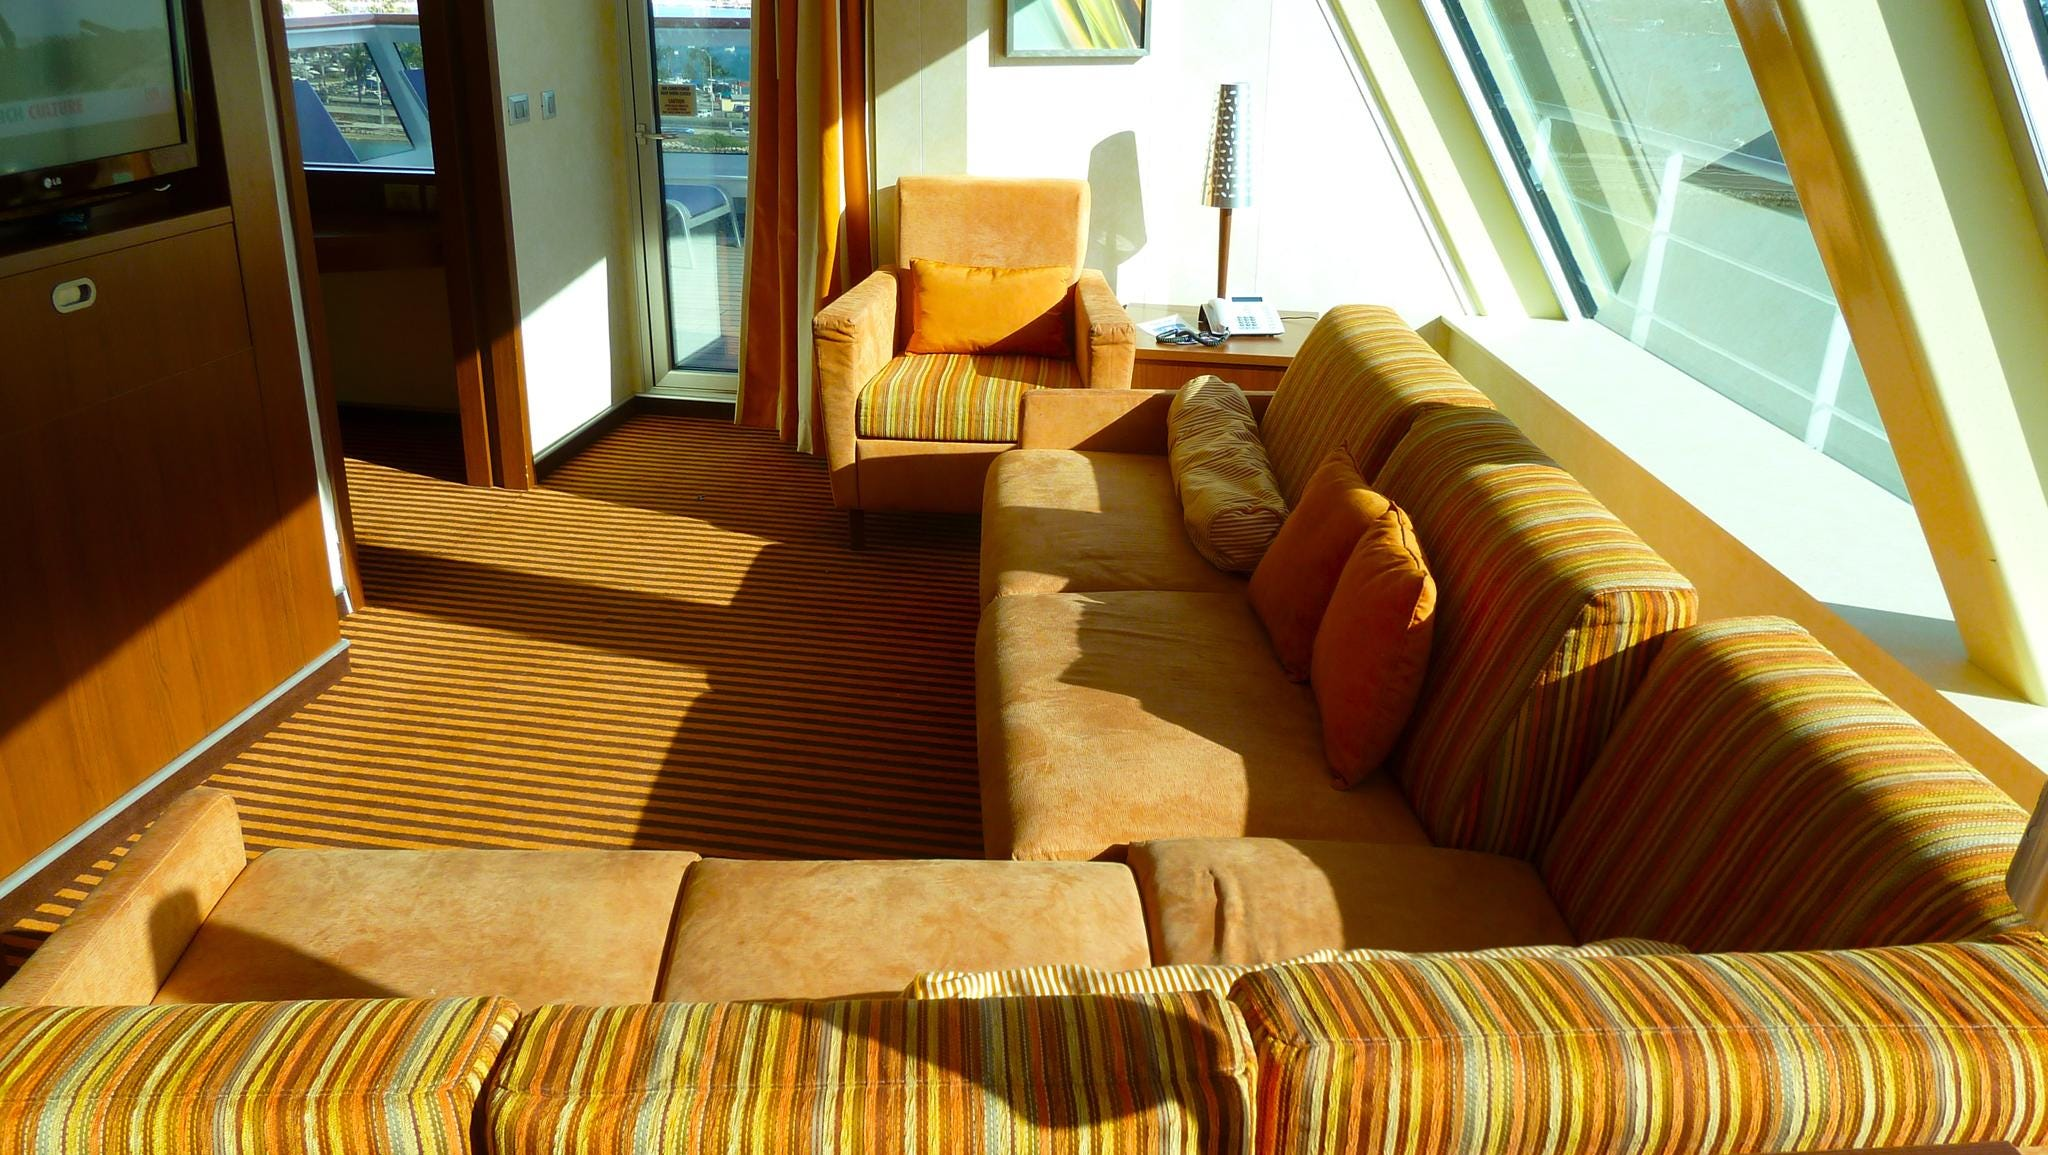 Carnival Valor has two Captain's Suites directly above the wheelhouse on Deck 9. They have sitting areas fronted with picture windows.